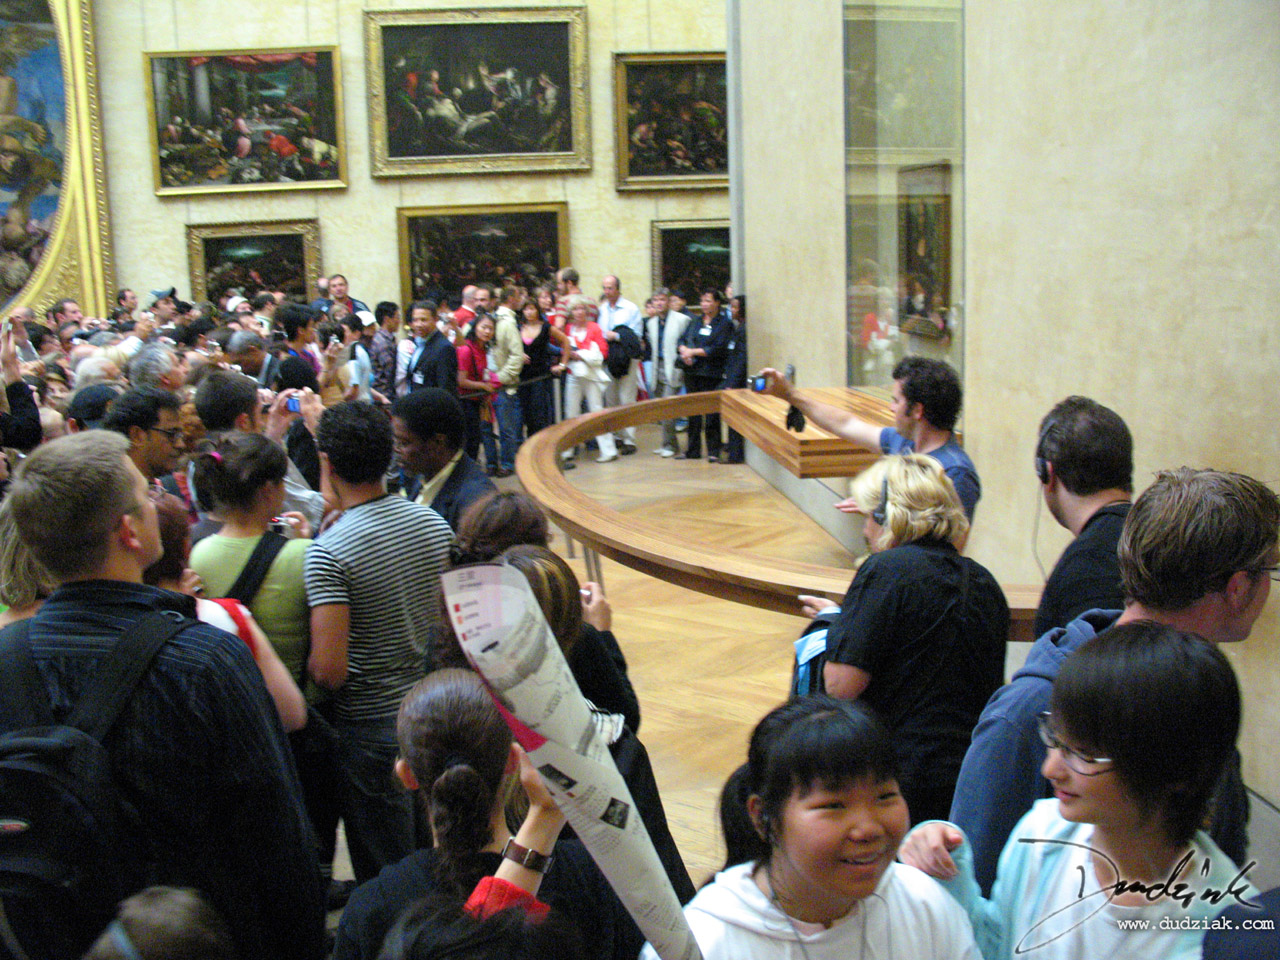 crowd,  Louvre Museum,  Mona Lisa,  Musee du Louvre,  da Vinci,  France,  Paris